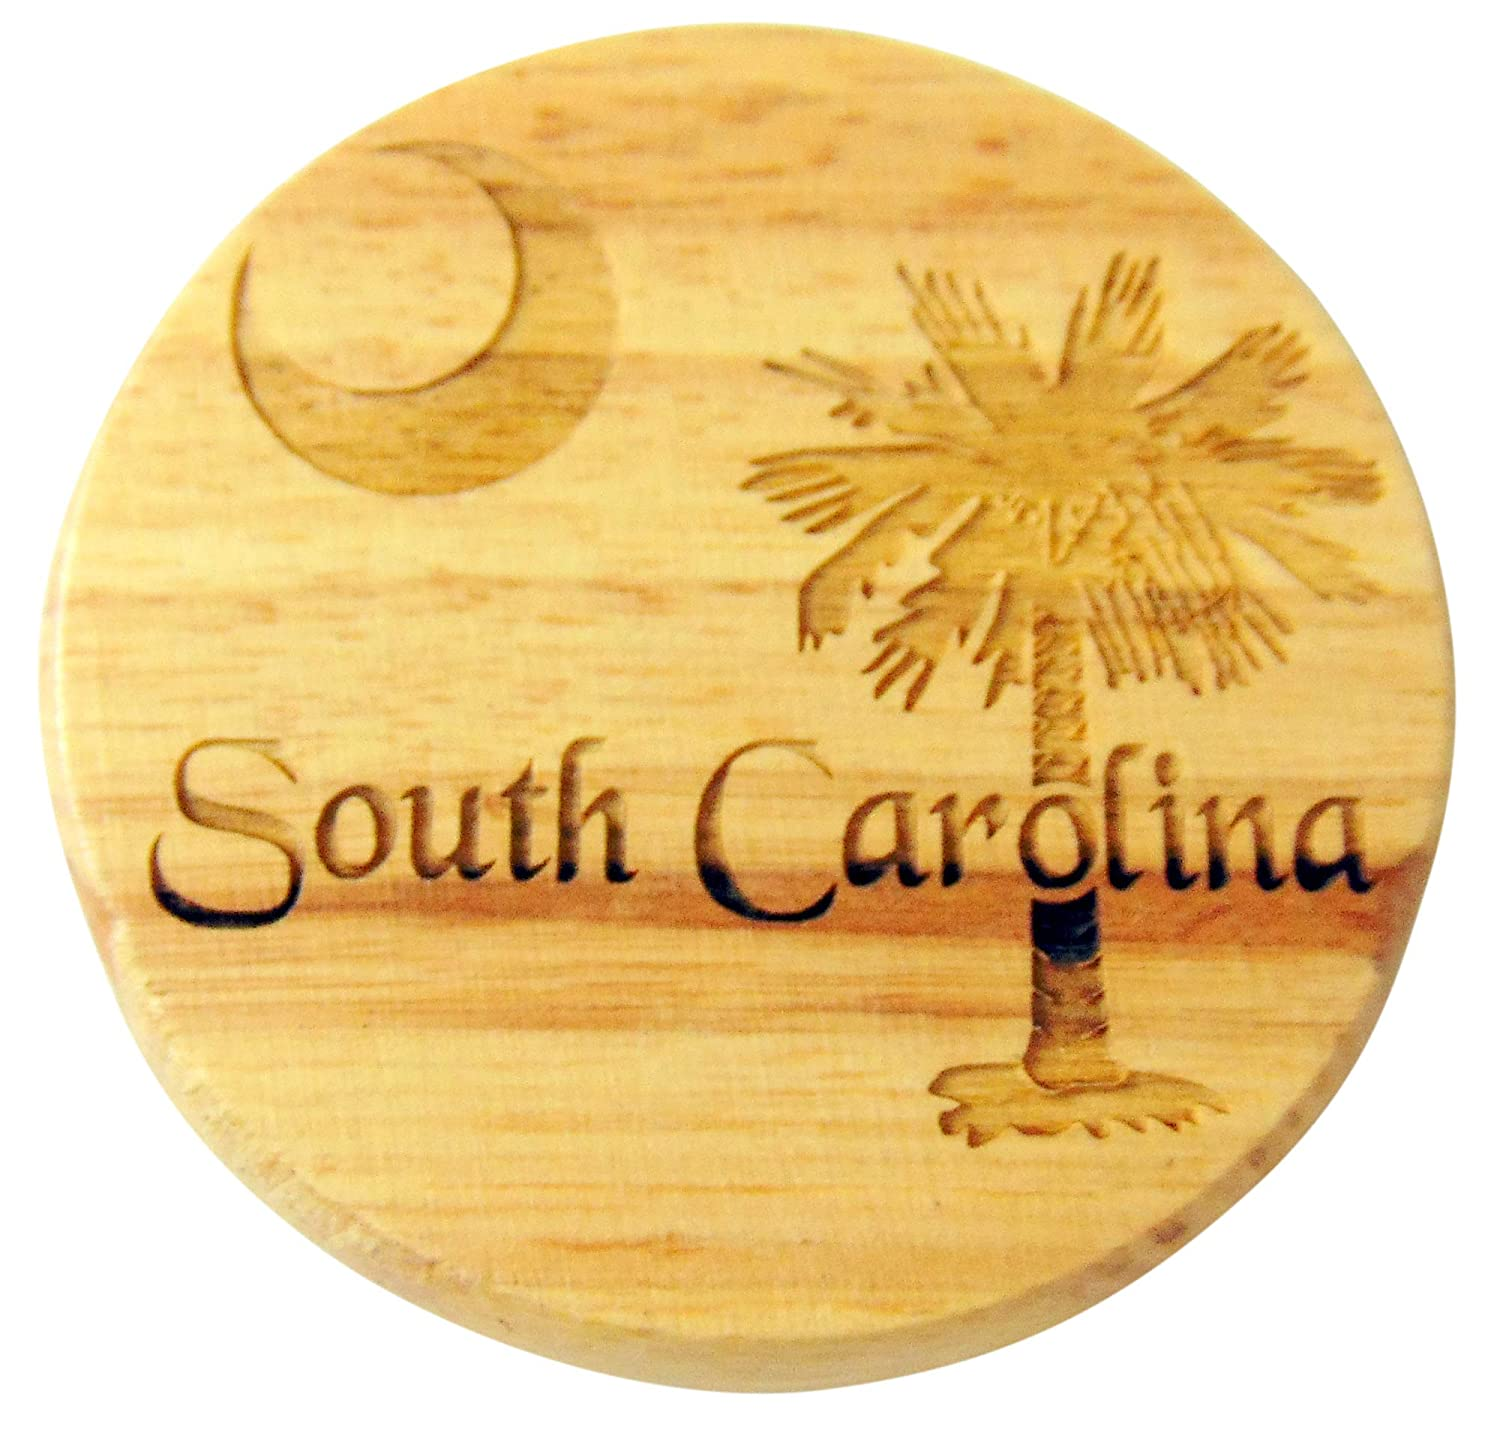 South Carolina Flag Wooden Bottle Opener and Fridge Magnet Made in the USA 2 1//2 Inch